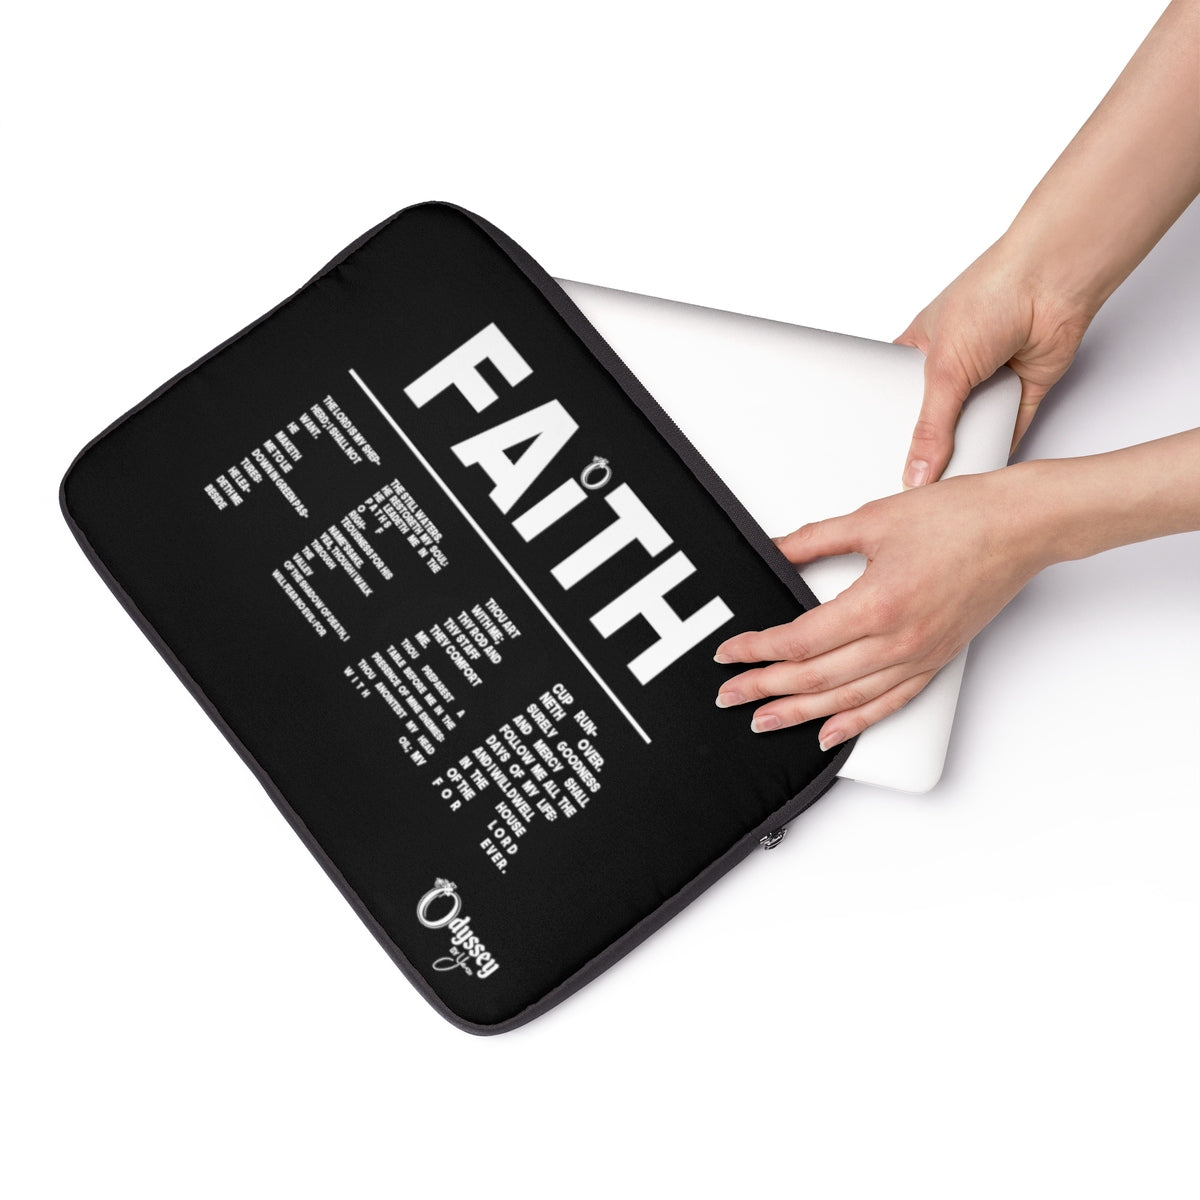 Odyssey Faith Over Fear Laptop Sleeve - Black